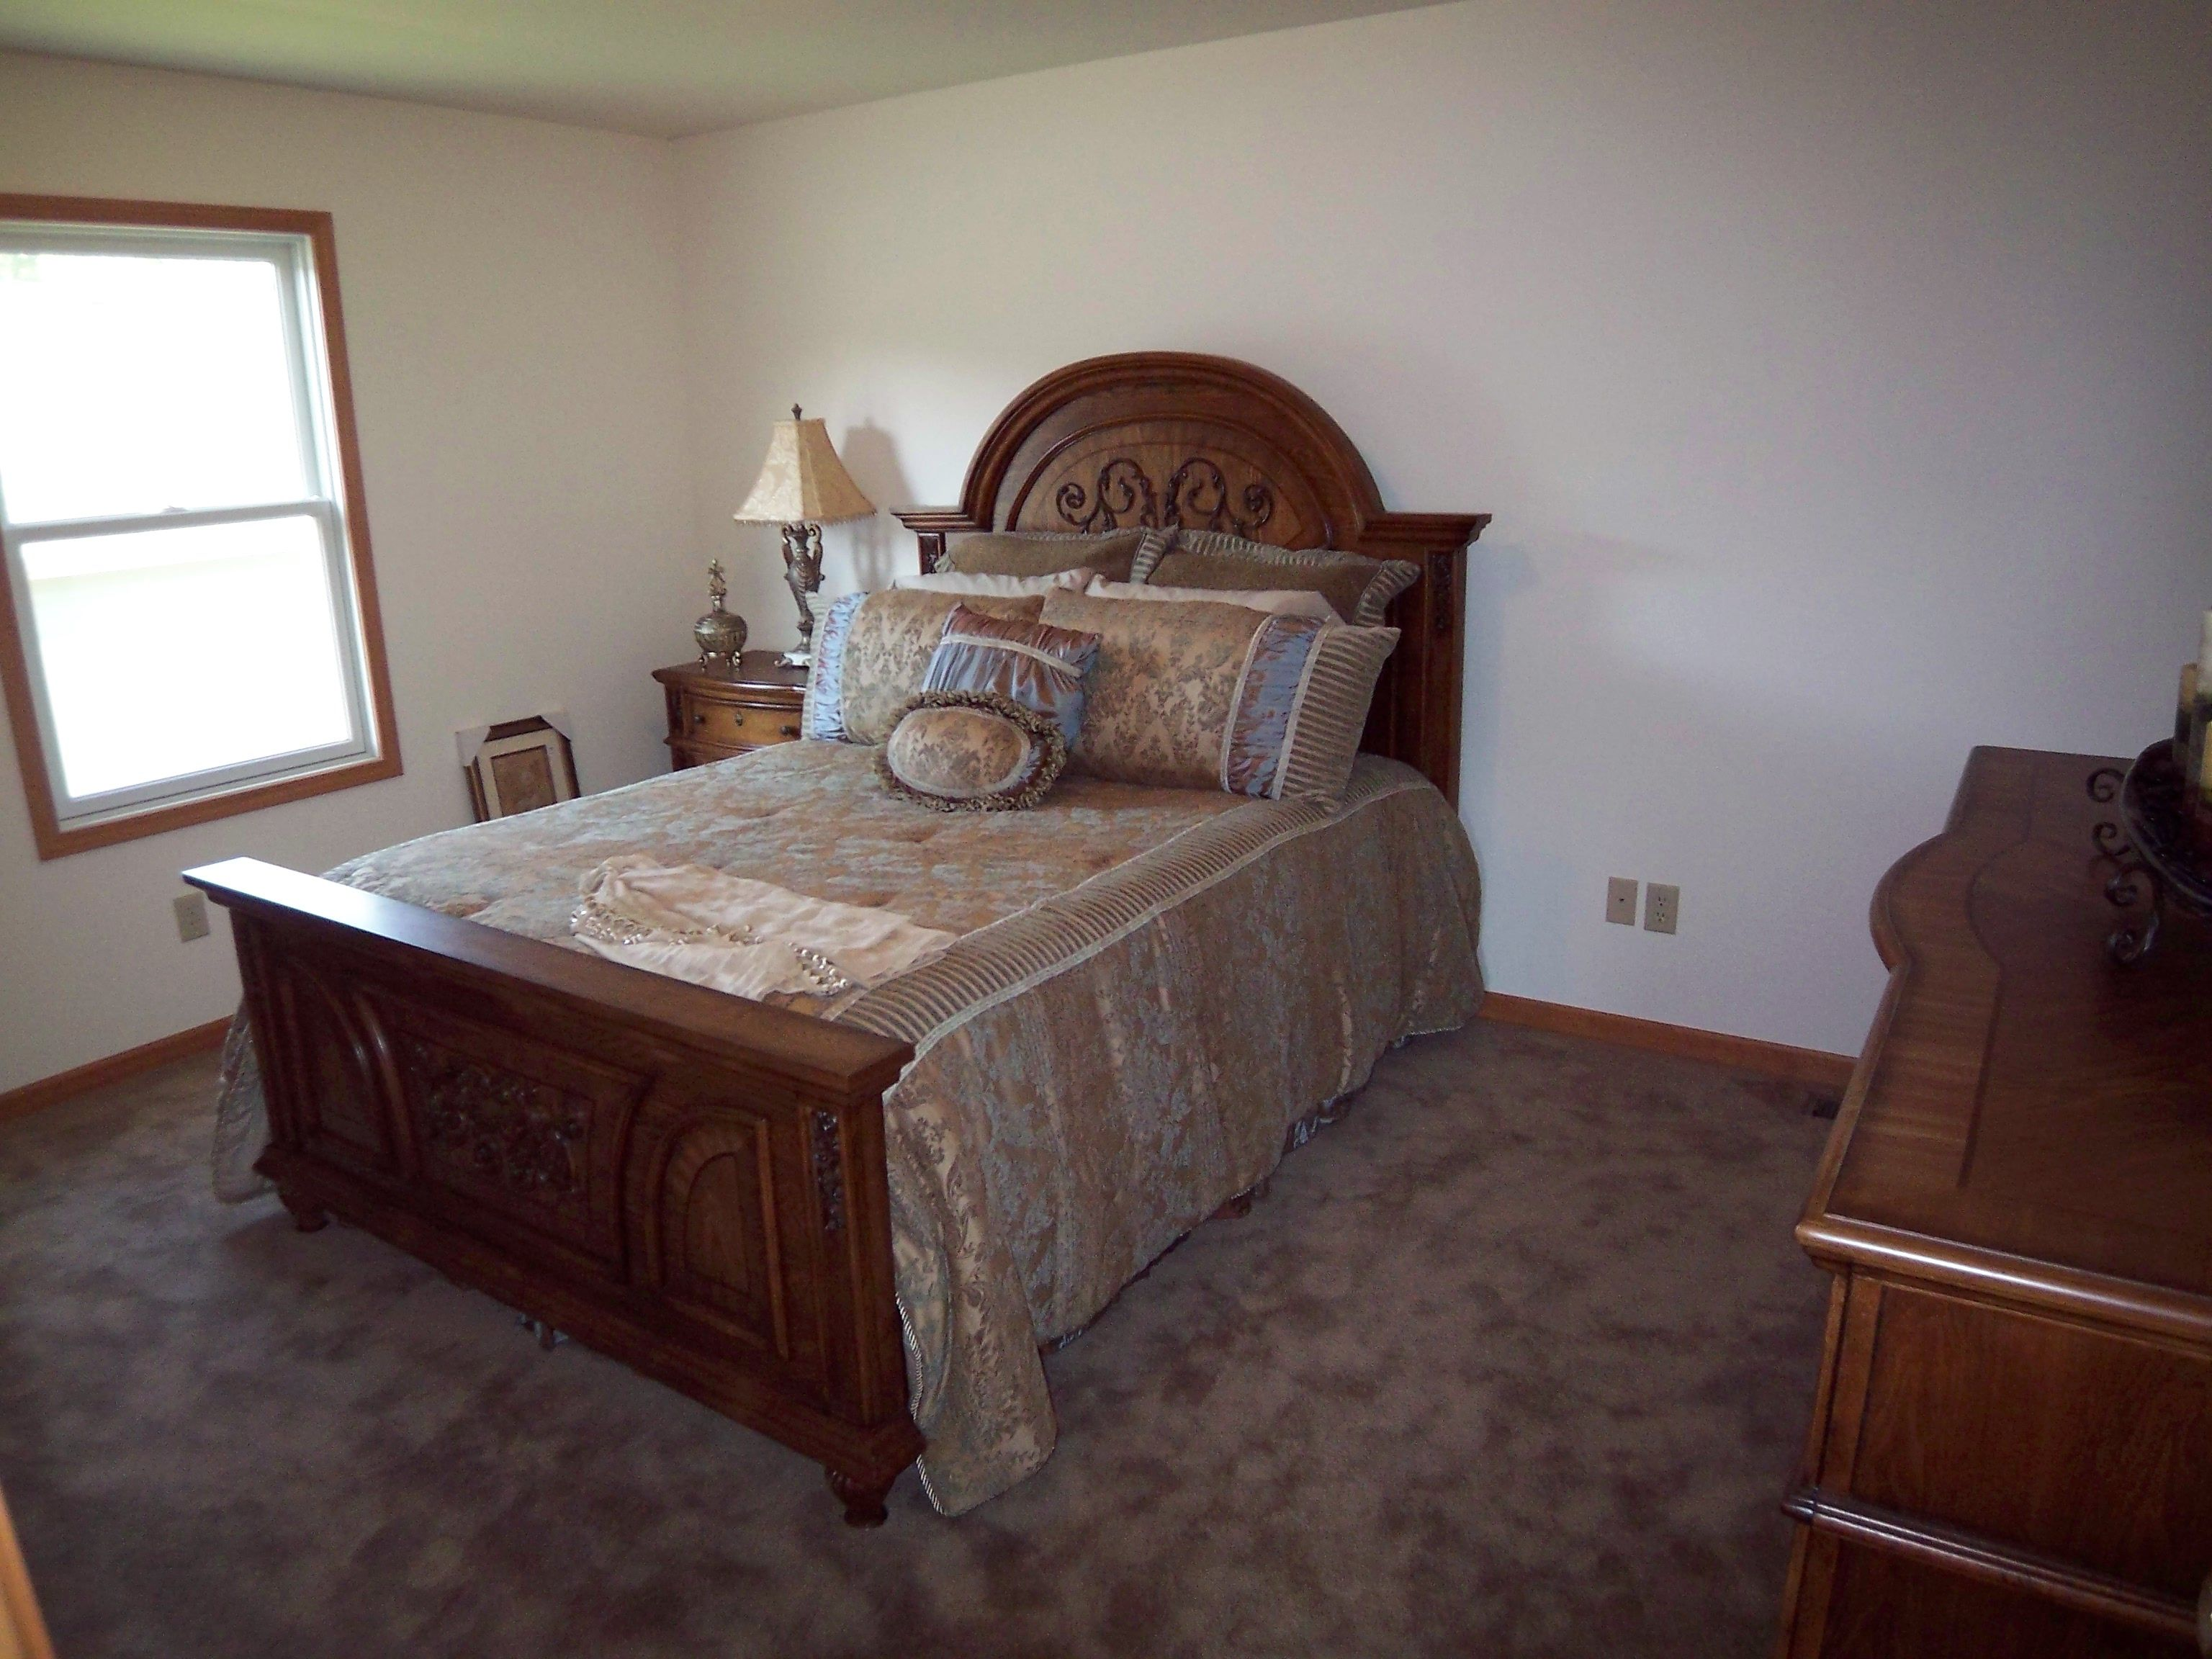 Bedroom featured in the Parkwood By Accent Homes Inc. in Gary, IN